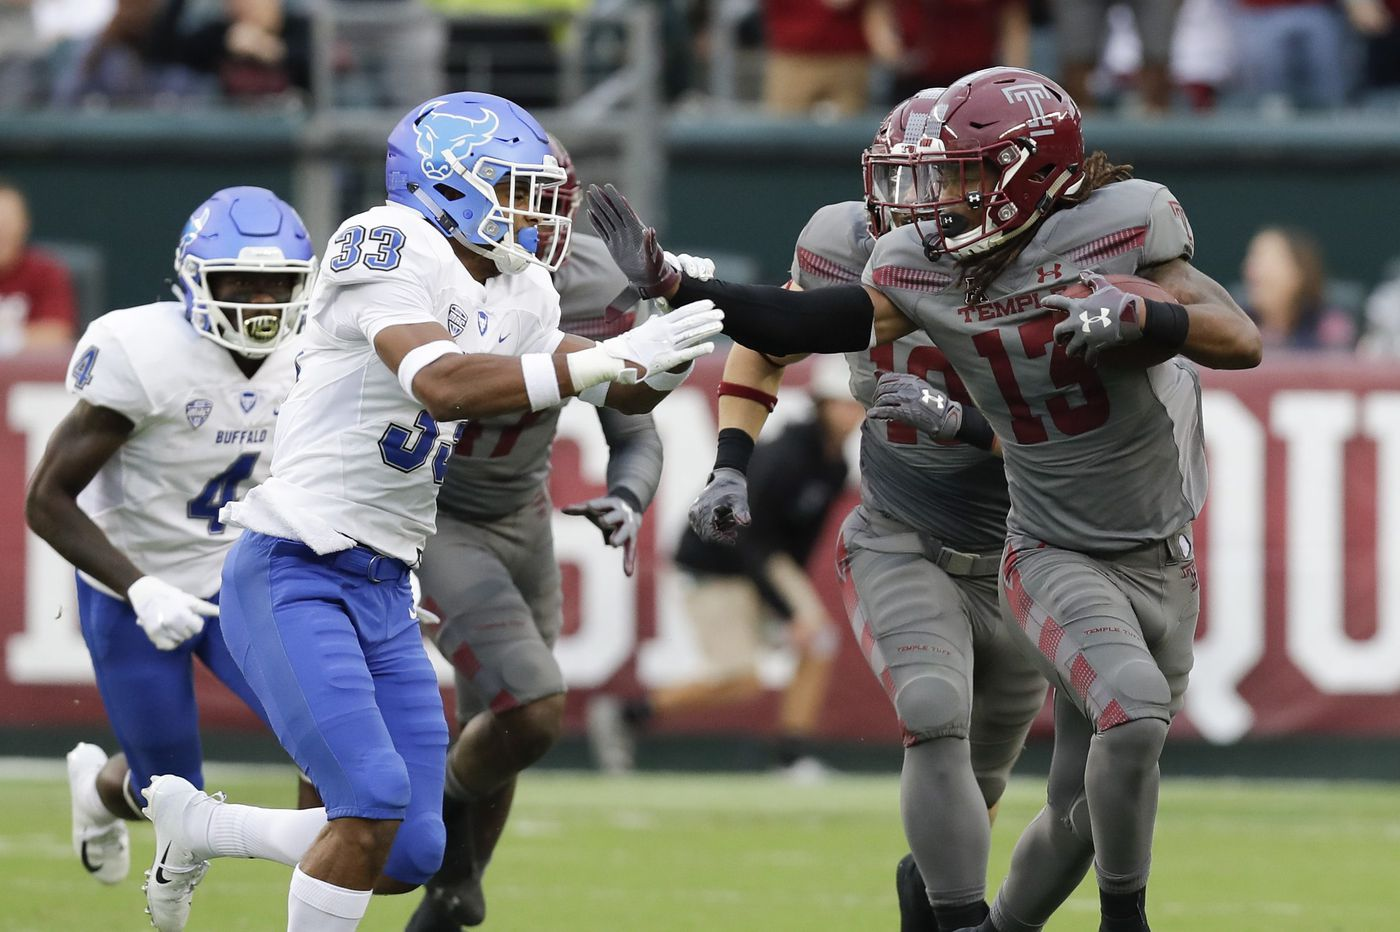 Temple to face Duke in the Independence Bowl